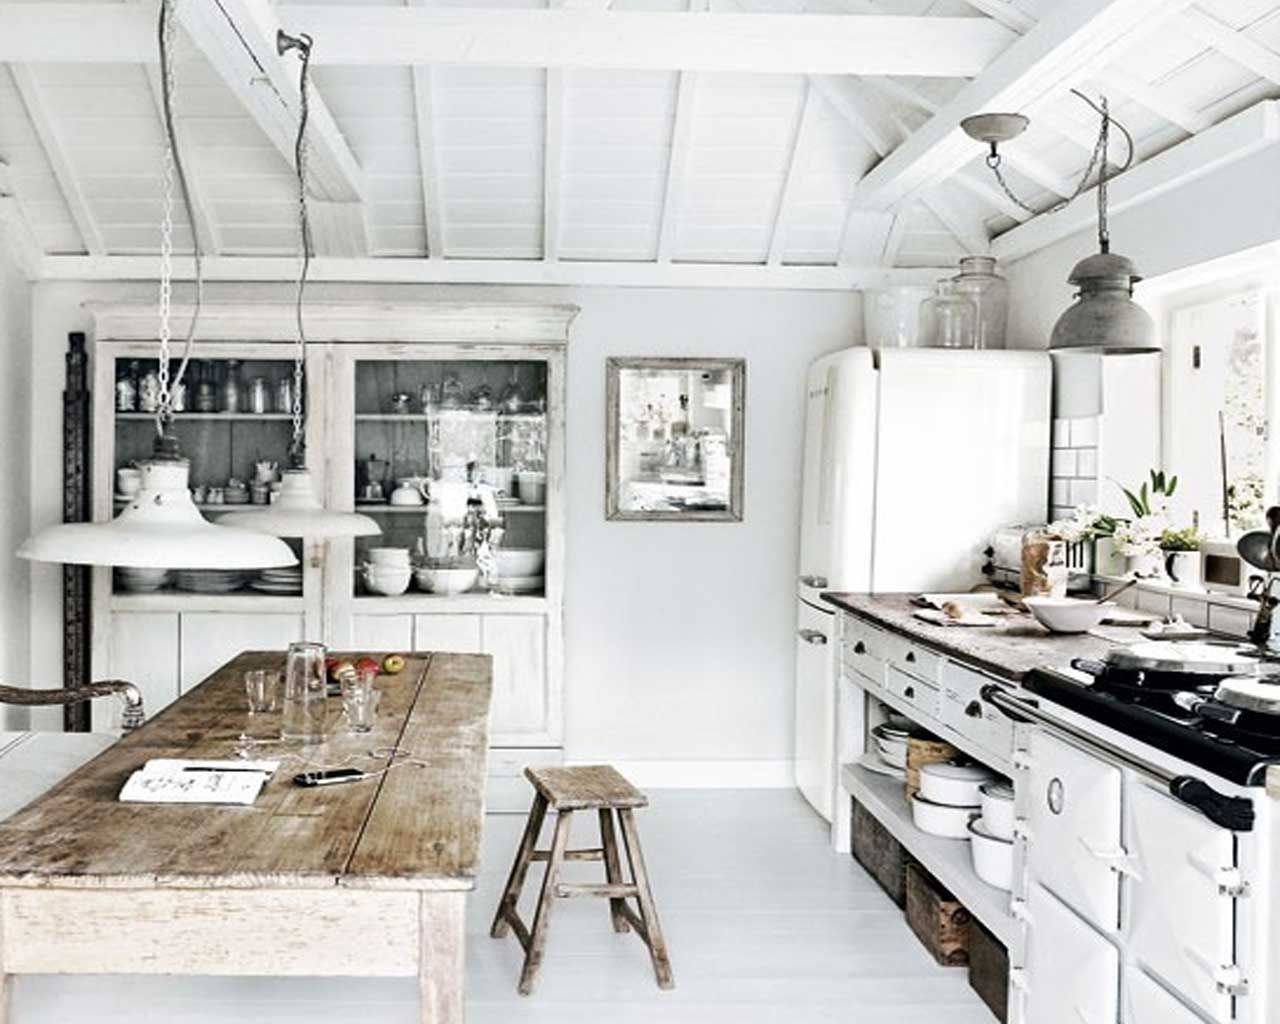 Rustic beach interior design rustic cottage kitchen interiors design in white wall home Kitchen design center virginia beach